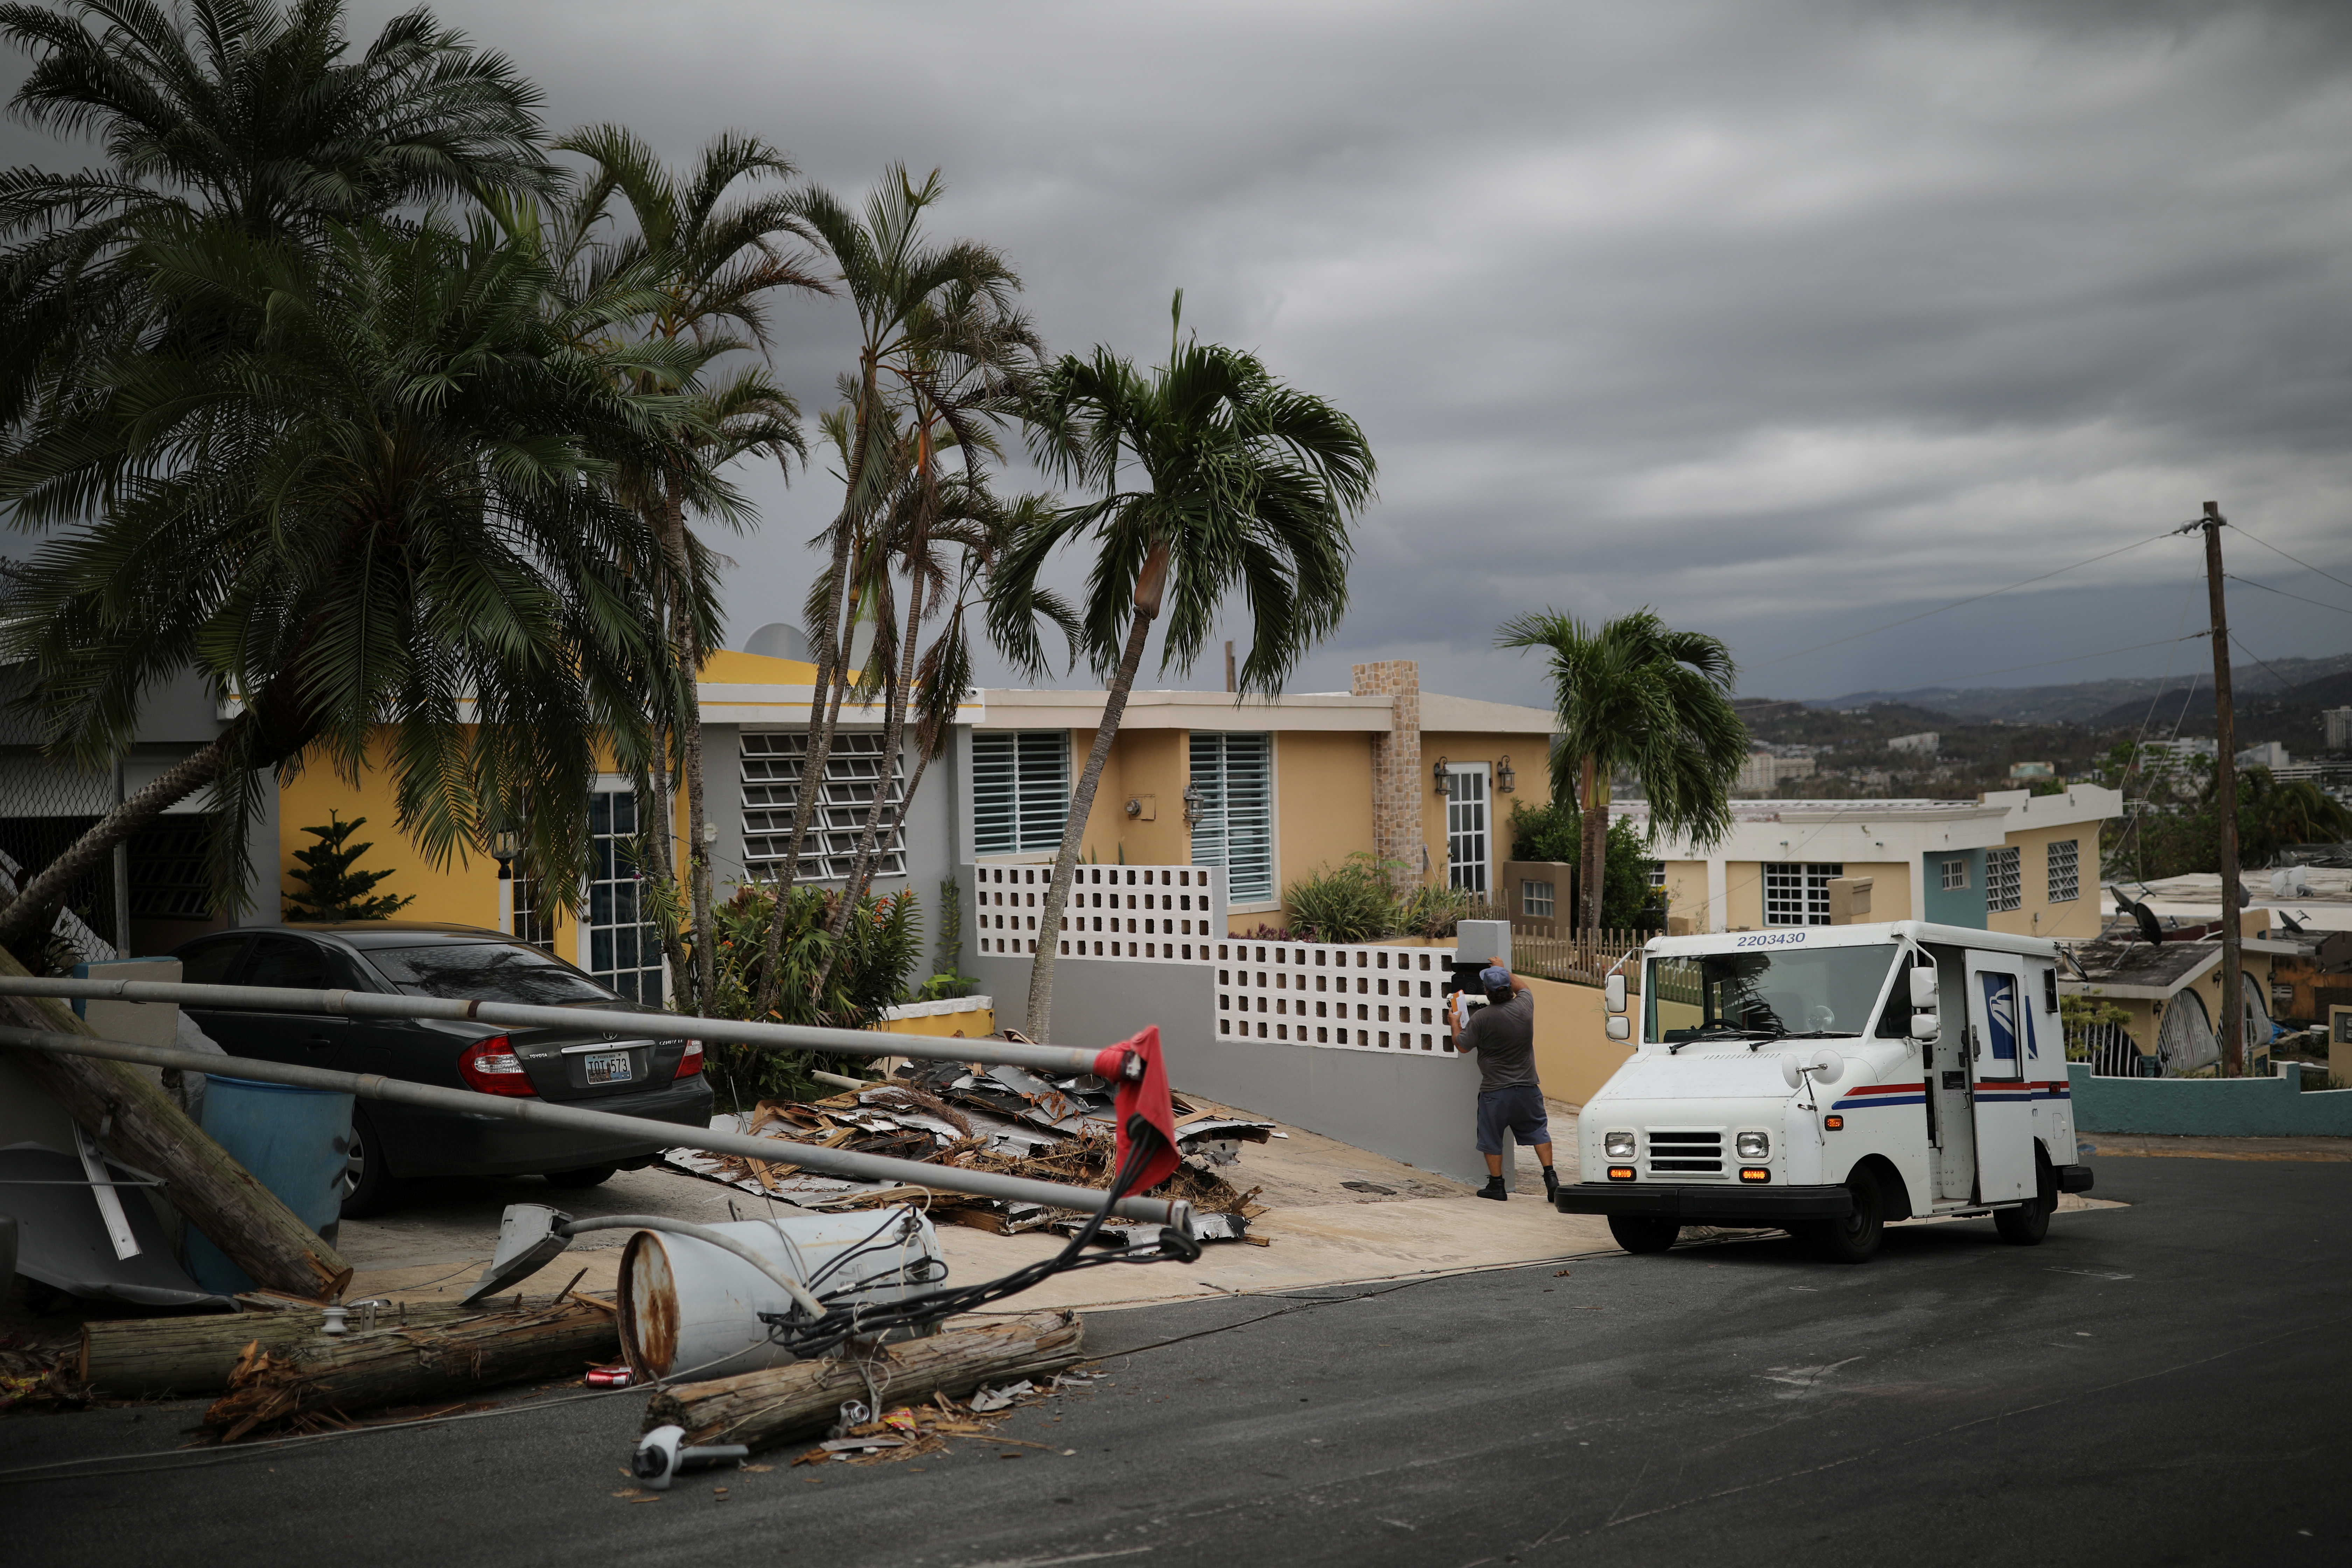 Alfredo Martinez, a mail man for the U.S. Postal Service delivers the mail at an area damaged by Hurricane Maria in San Juan, Puerto Rico